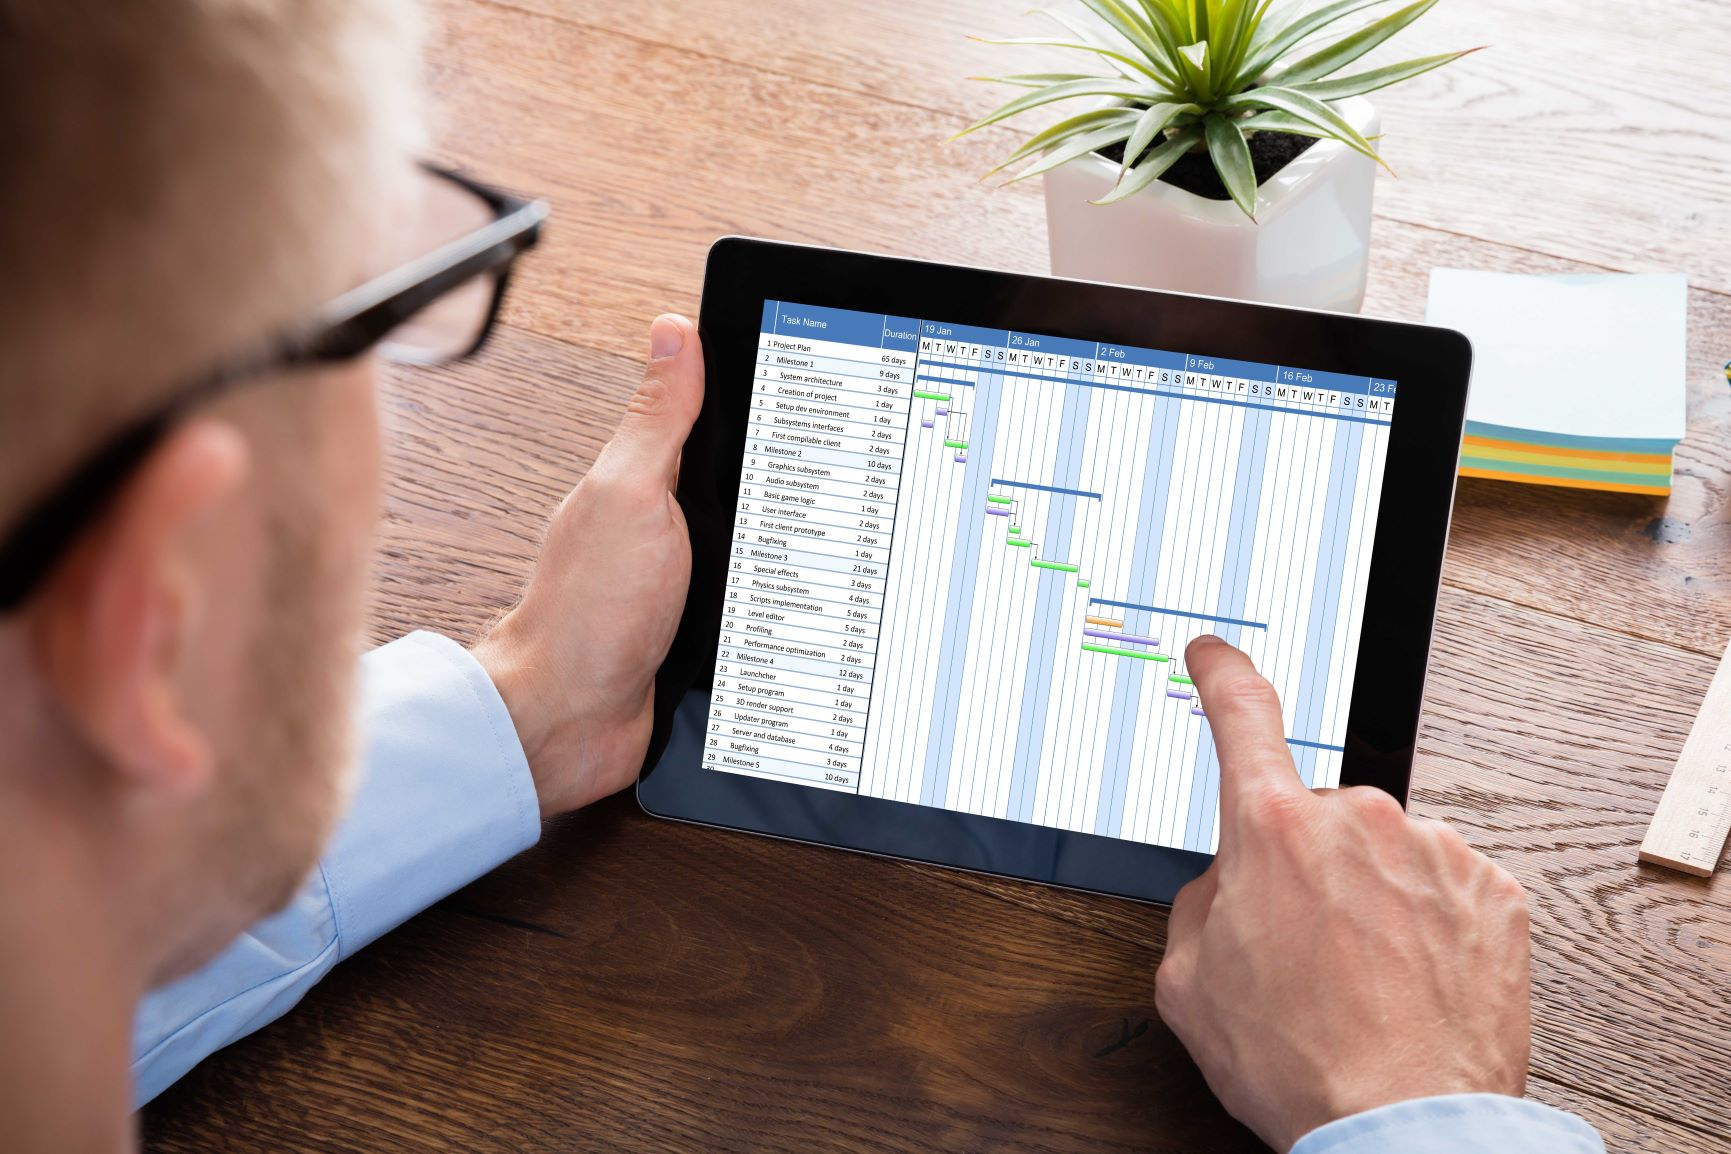 8 Gantt Chart Tools to Test in 2019